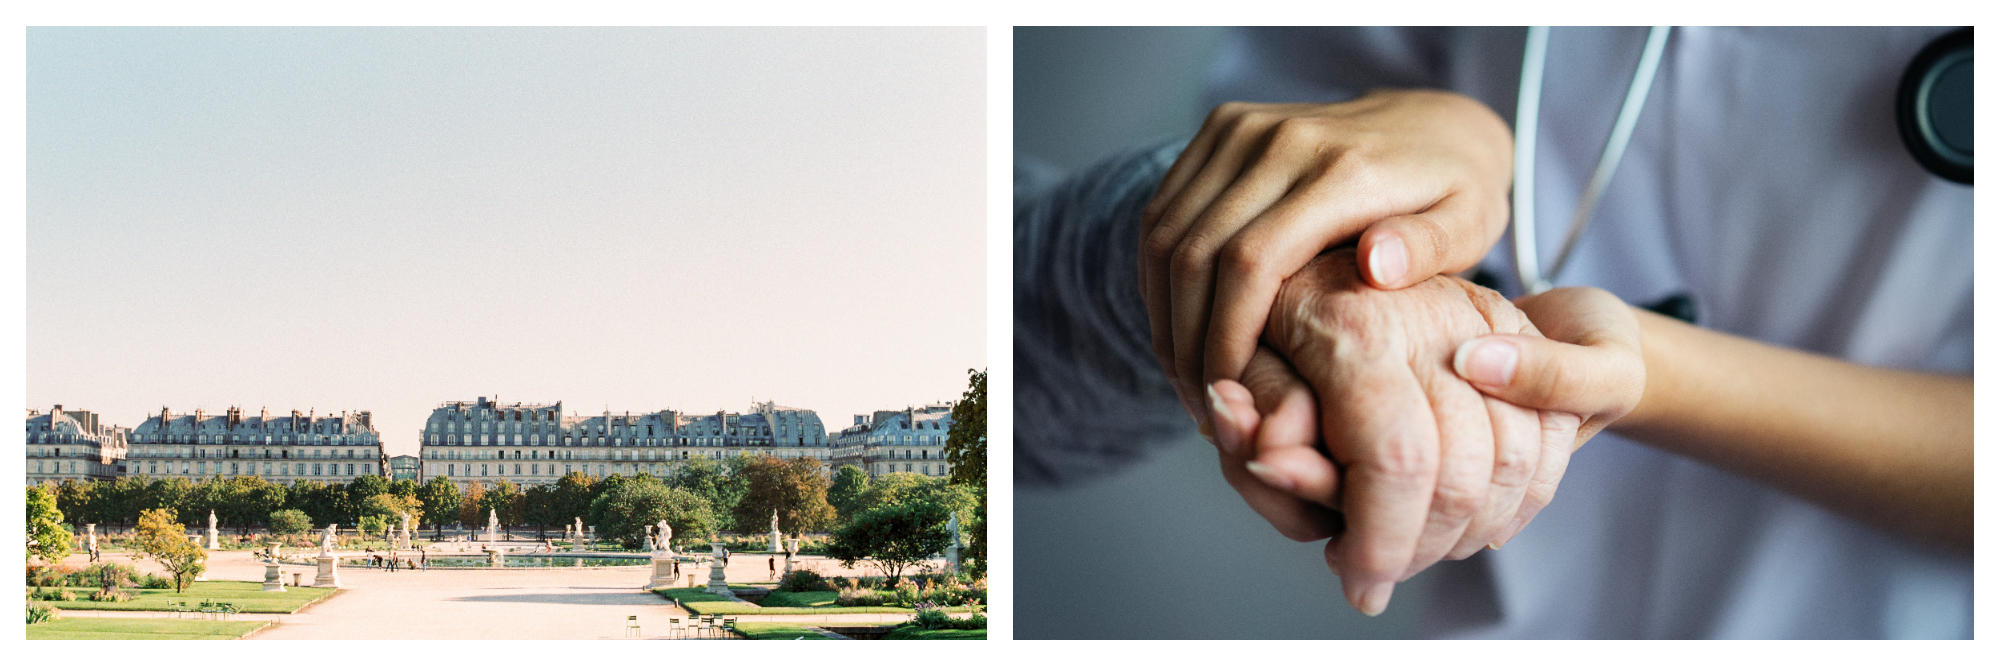 On the left: The sun illuminates the Jardin des Tuileries as people mill around the central fountain by the Louvre. On the left: A doctor gently applies pressure to a patient's hand to perform an evaluation.